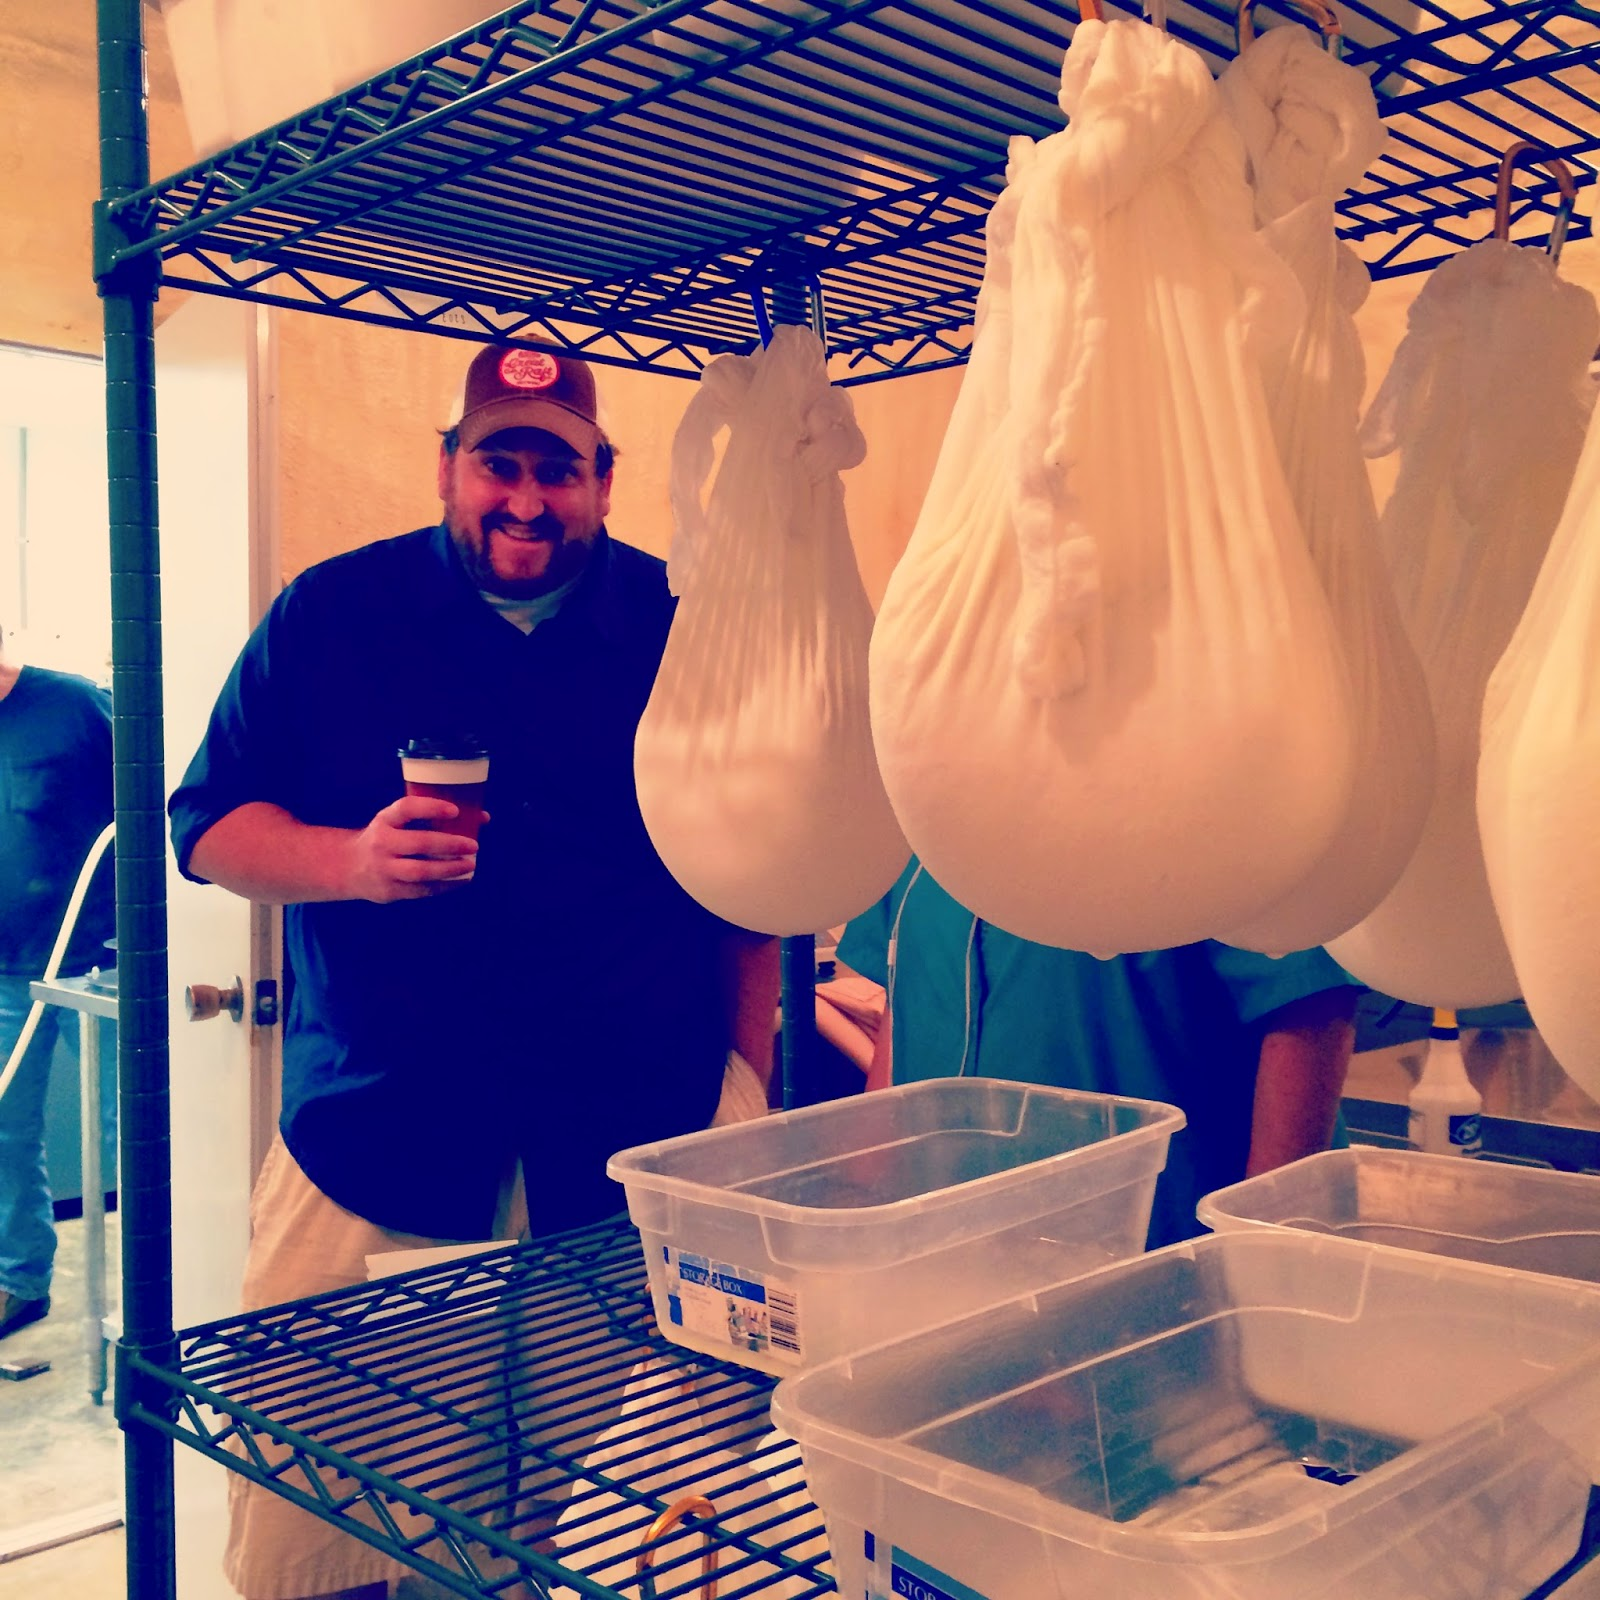 Jay Ducote checks out cheese curds at Wes Mar Farms